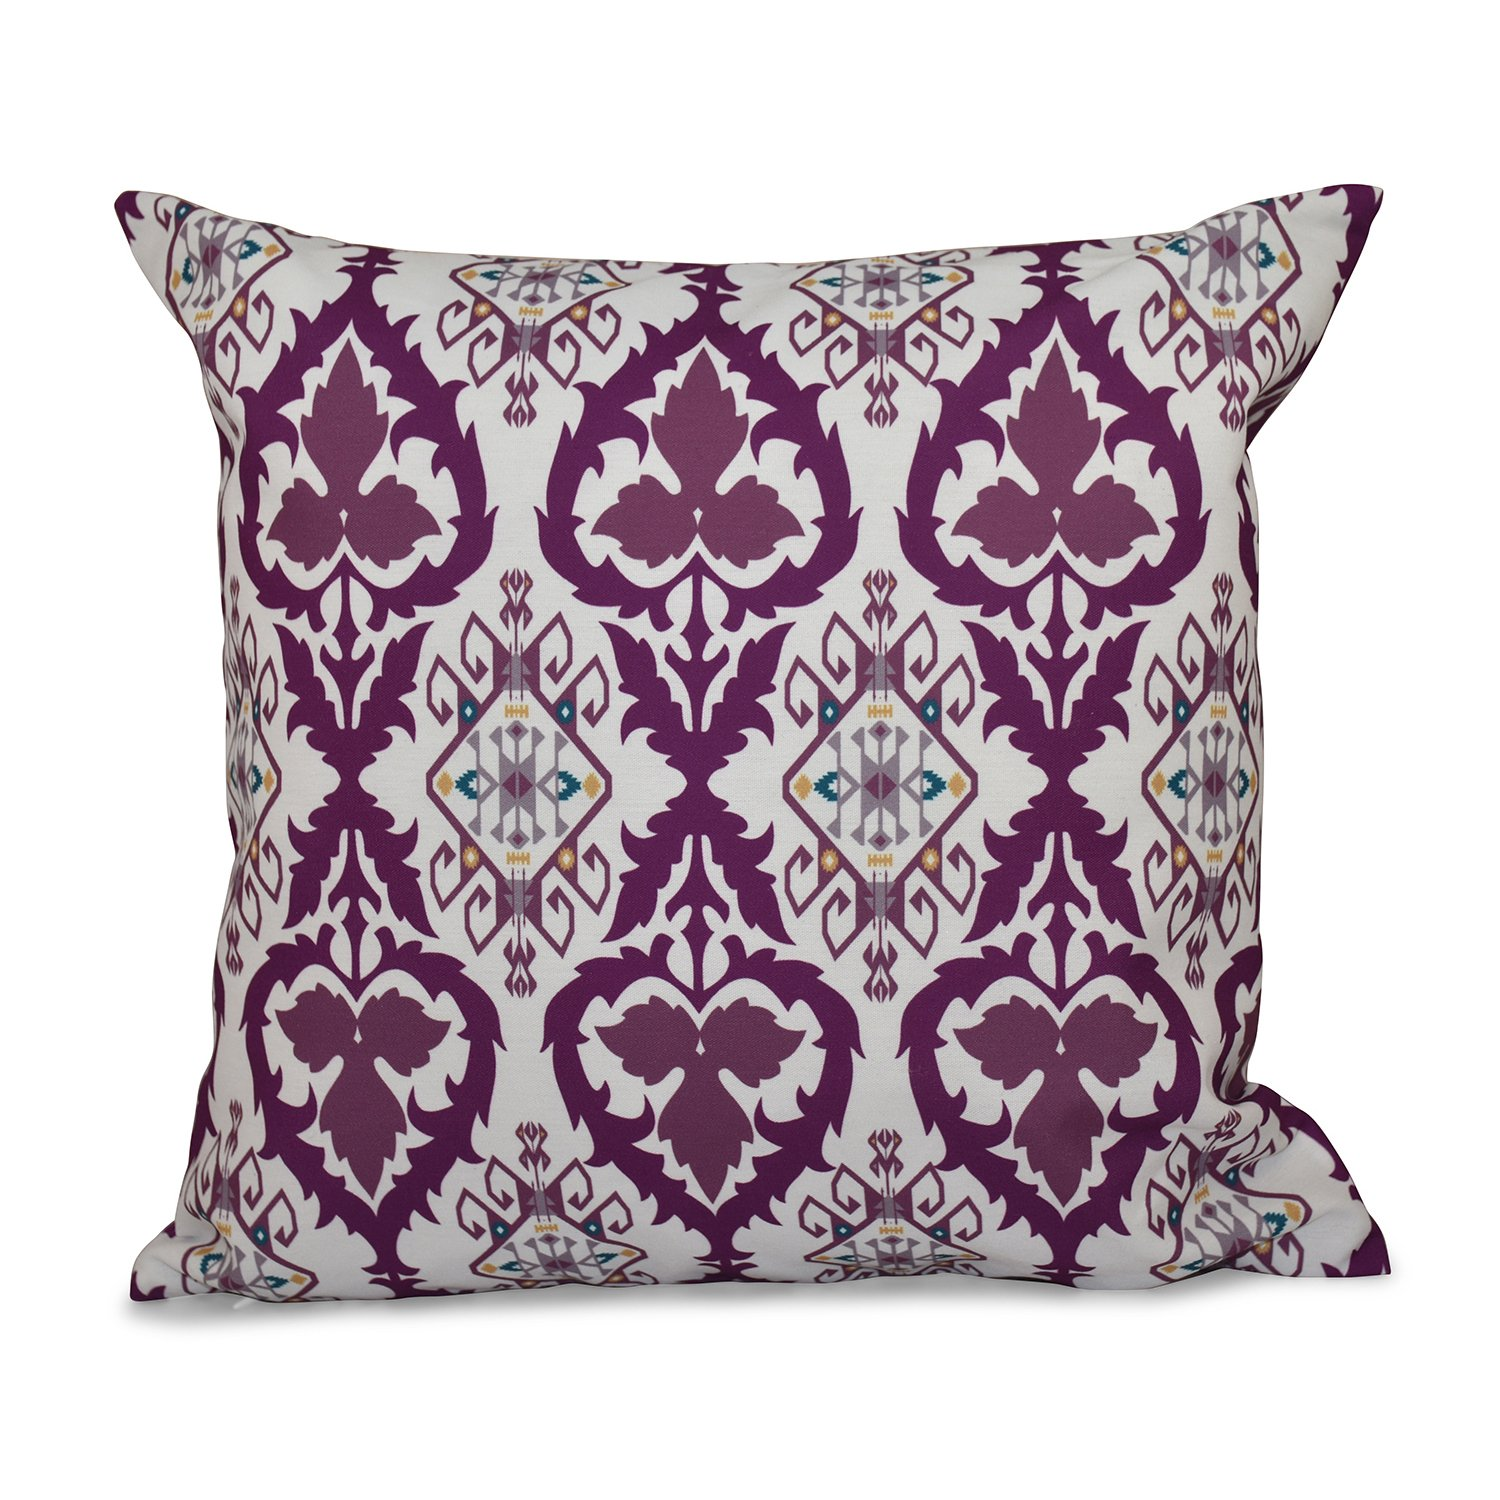 E by design O5PGN538PP2PU5-20 Printed Outdoor Pillow